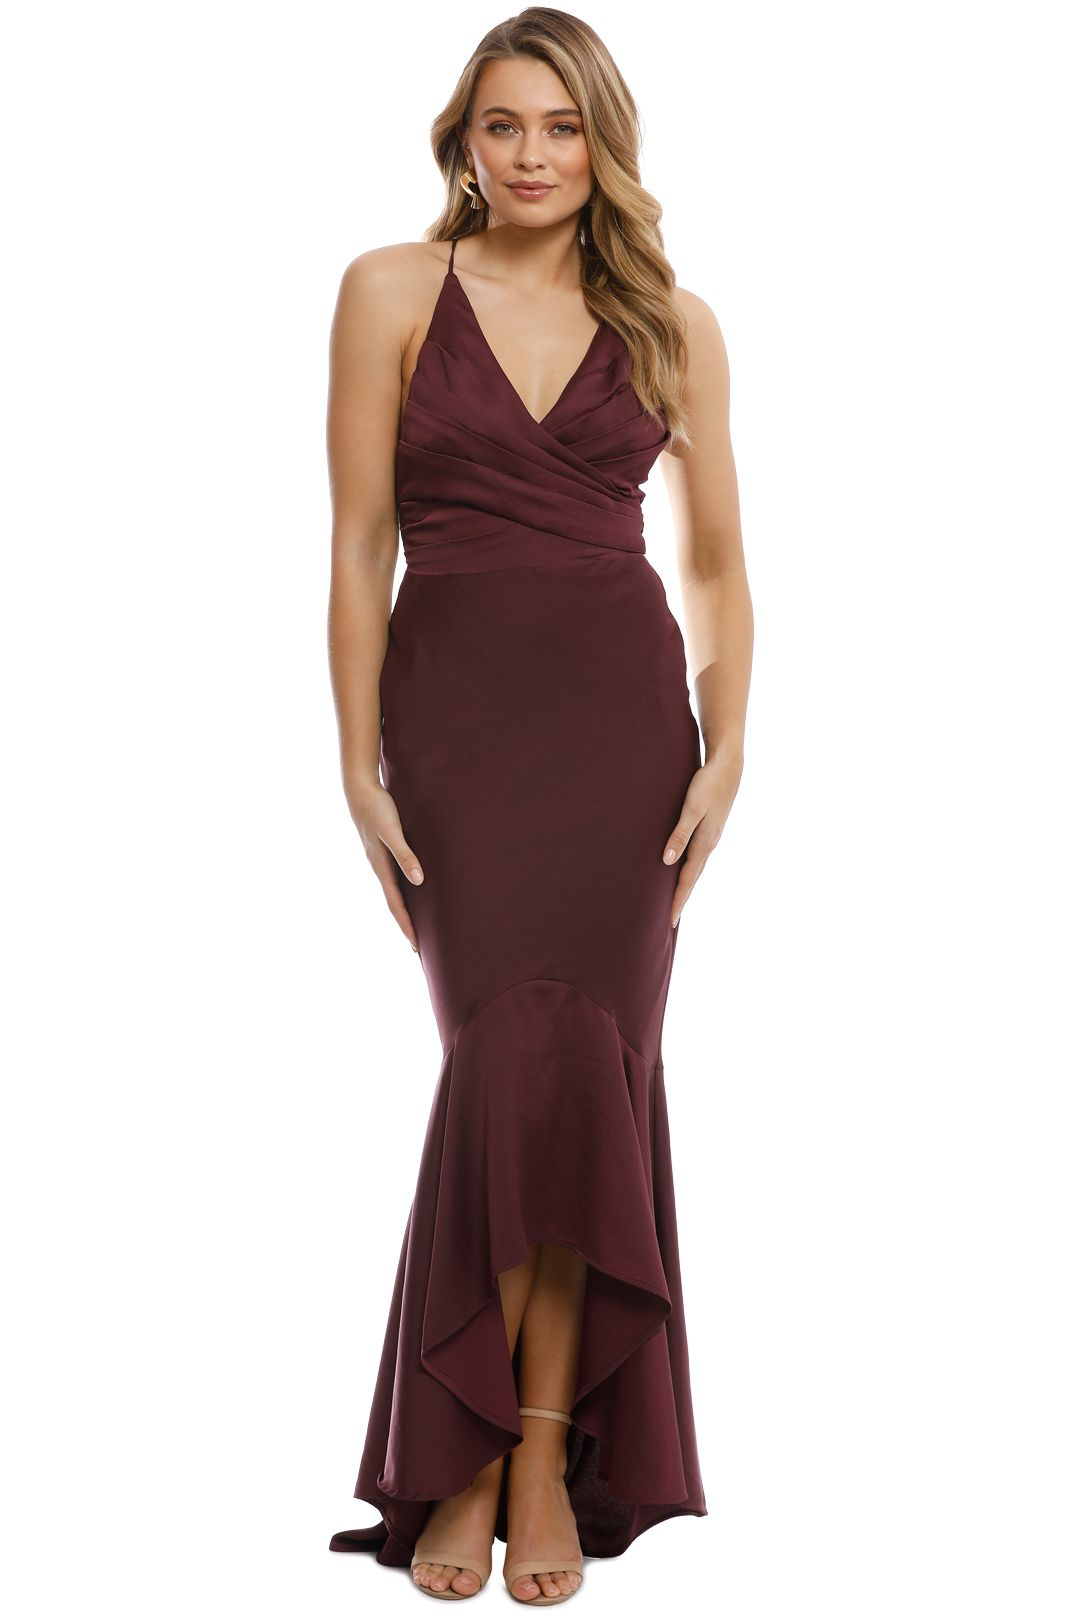 Grace and Hart - Juliets Delight Gown - Wine - Front